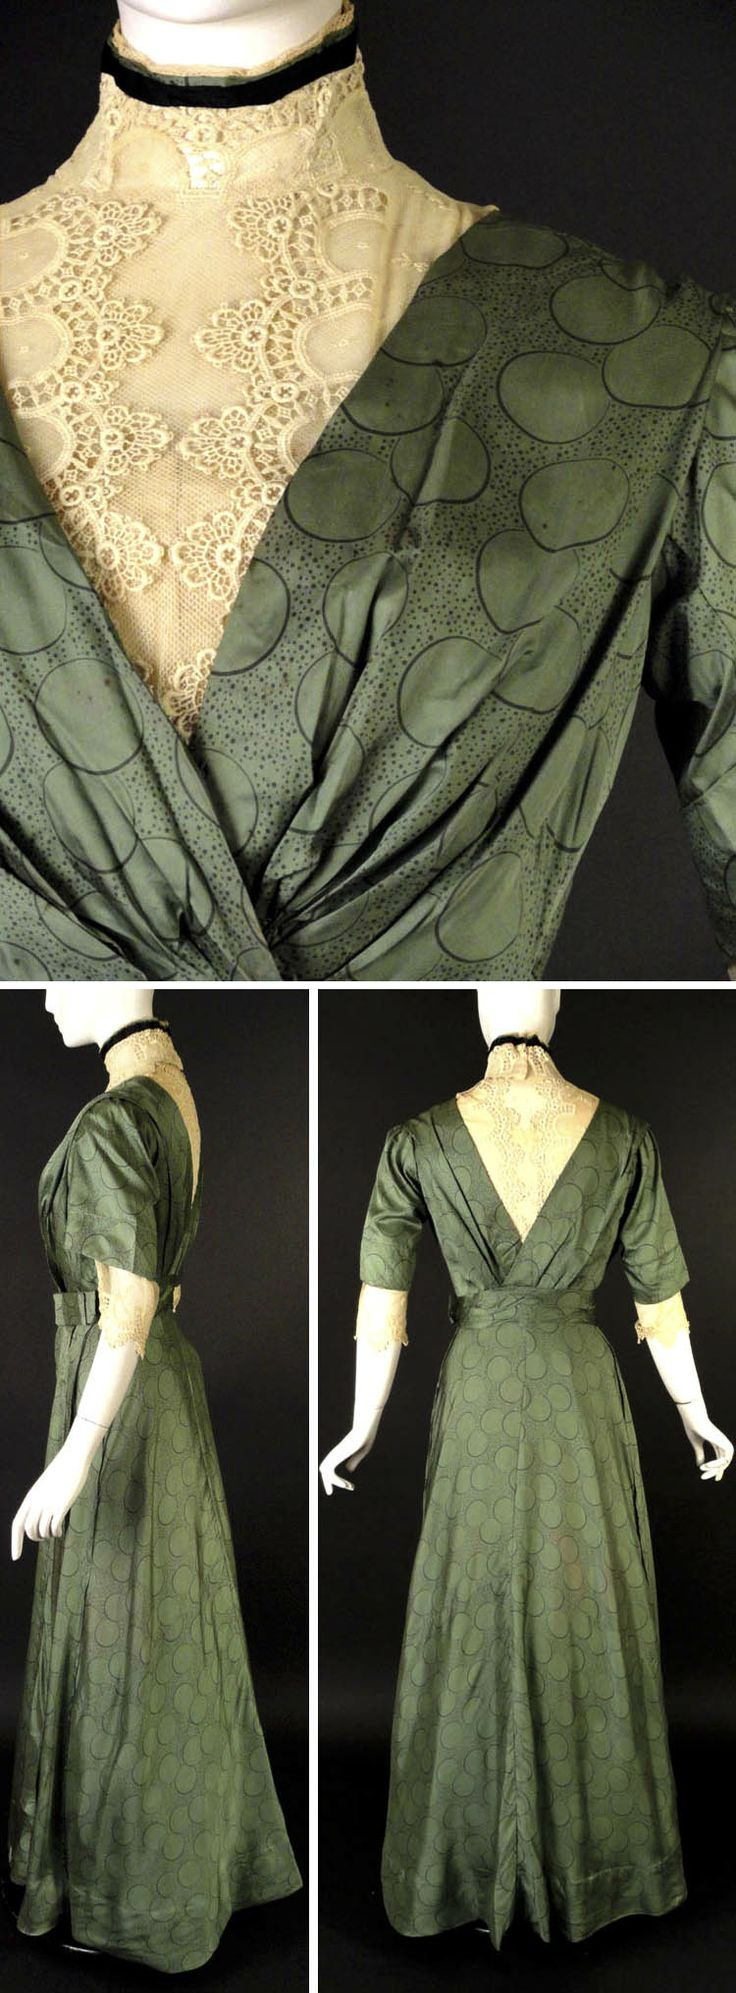 Day dress, ca. 1912. Green silk with black circle pattern. Overlapping bodice falling to gathers at center front. Ivory lace & net neckline; stand collar. Black & green silk ribbon borders top of collar. Cummerbund at waist with flat bow on side. Slender skirt falls from natural waistline seam with small box pleat down left front side. Short, set-in sleeves end with turned-back cuffs and lace & net under sleeves. Boned bodice lined in ivory taffeta. Vintage Martini